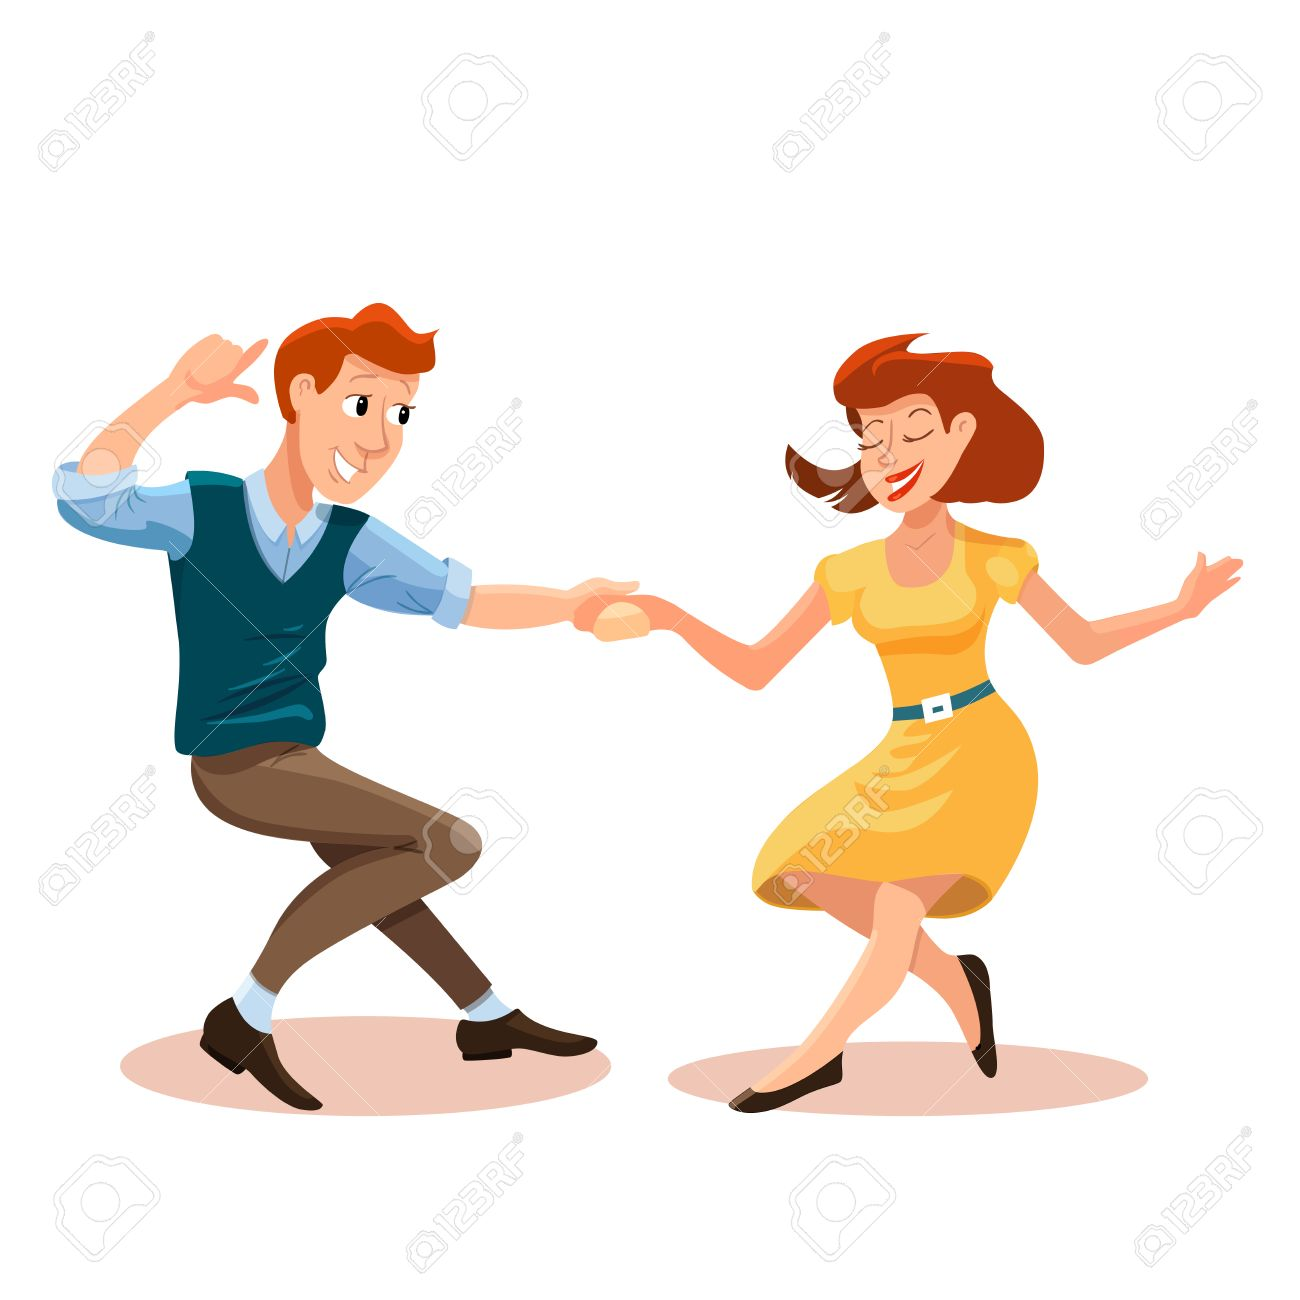 Vector Illustration Of Dancing Men And Woman In Cartoon Flat Royalty Free Cliparts Vectors And Stock Illustration Image 67896900